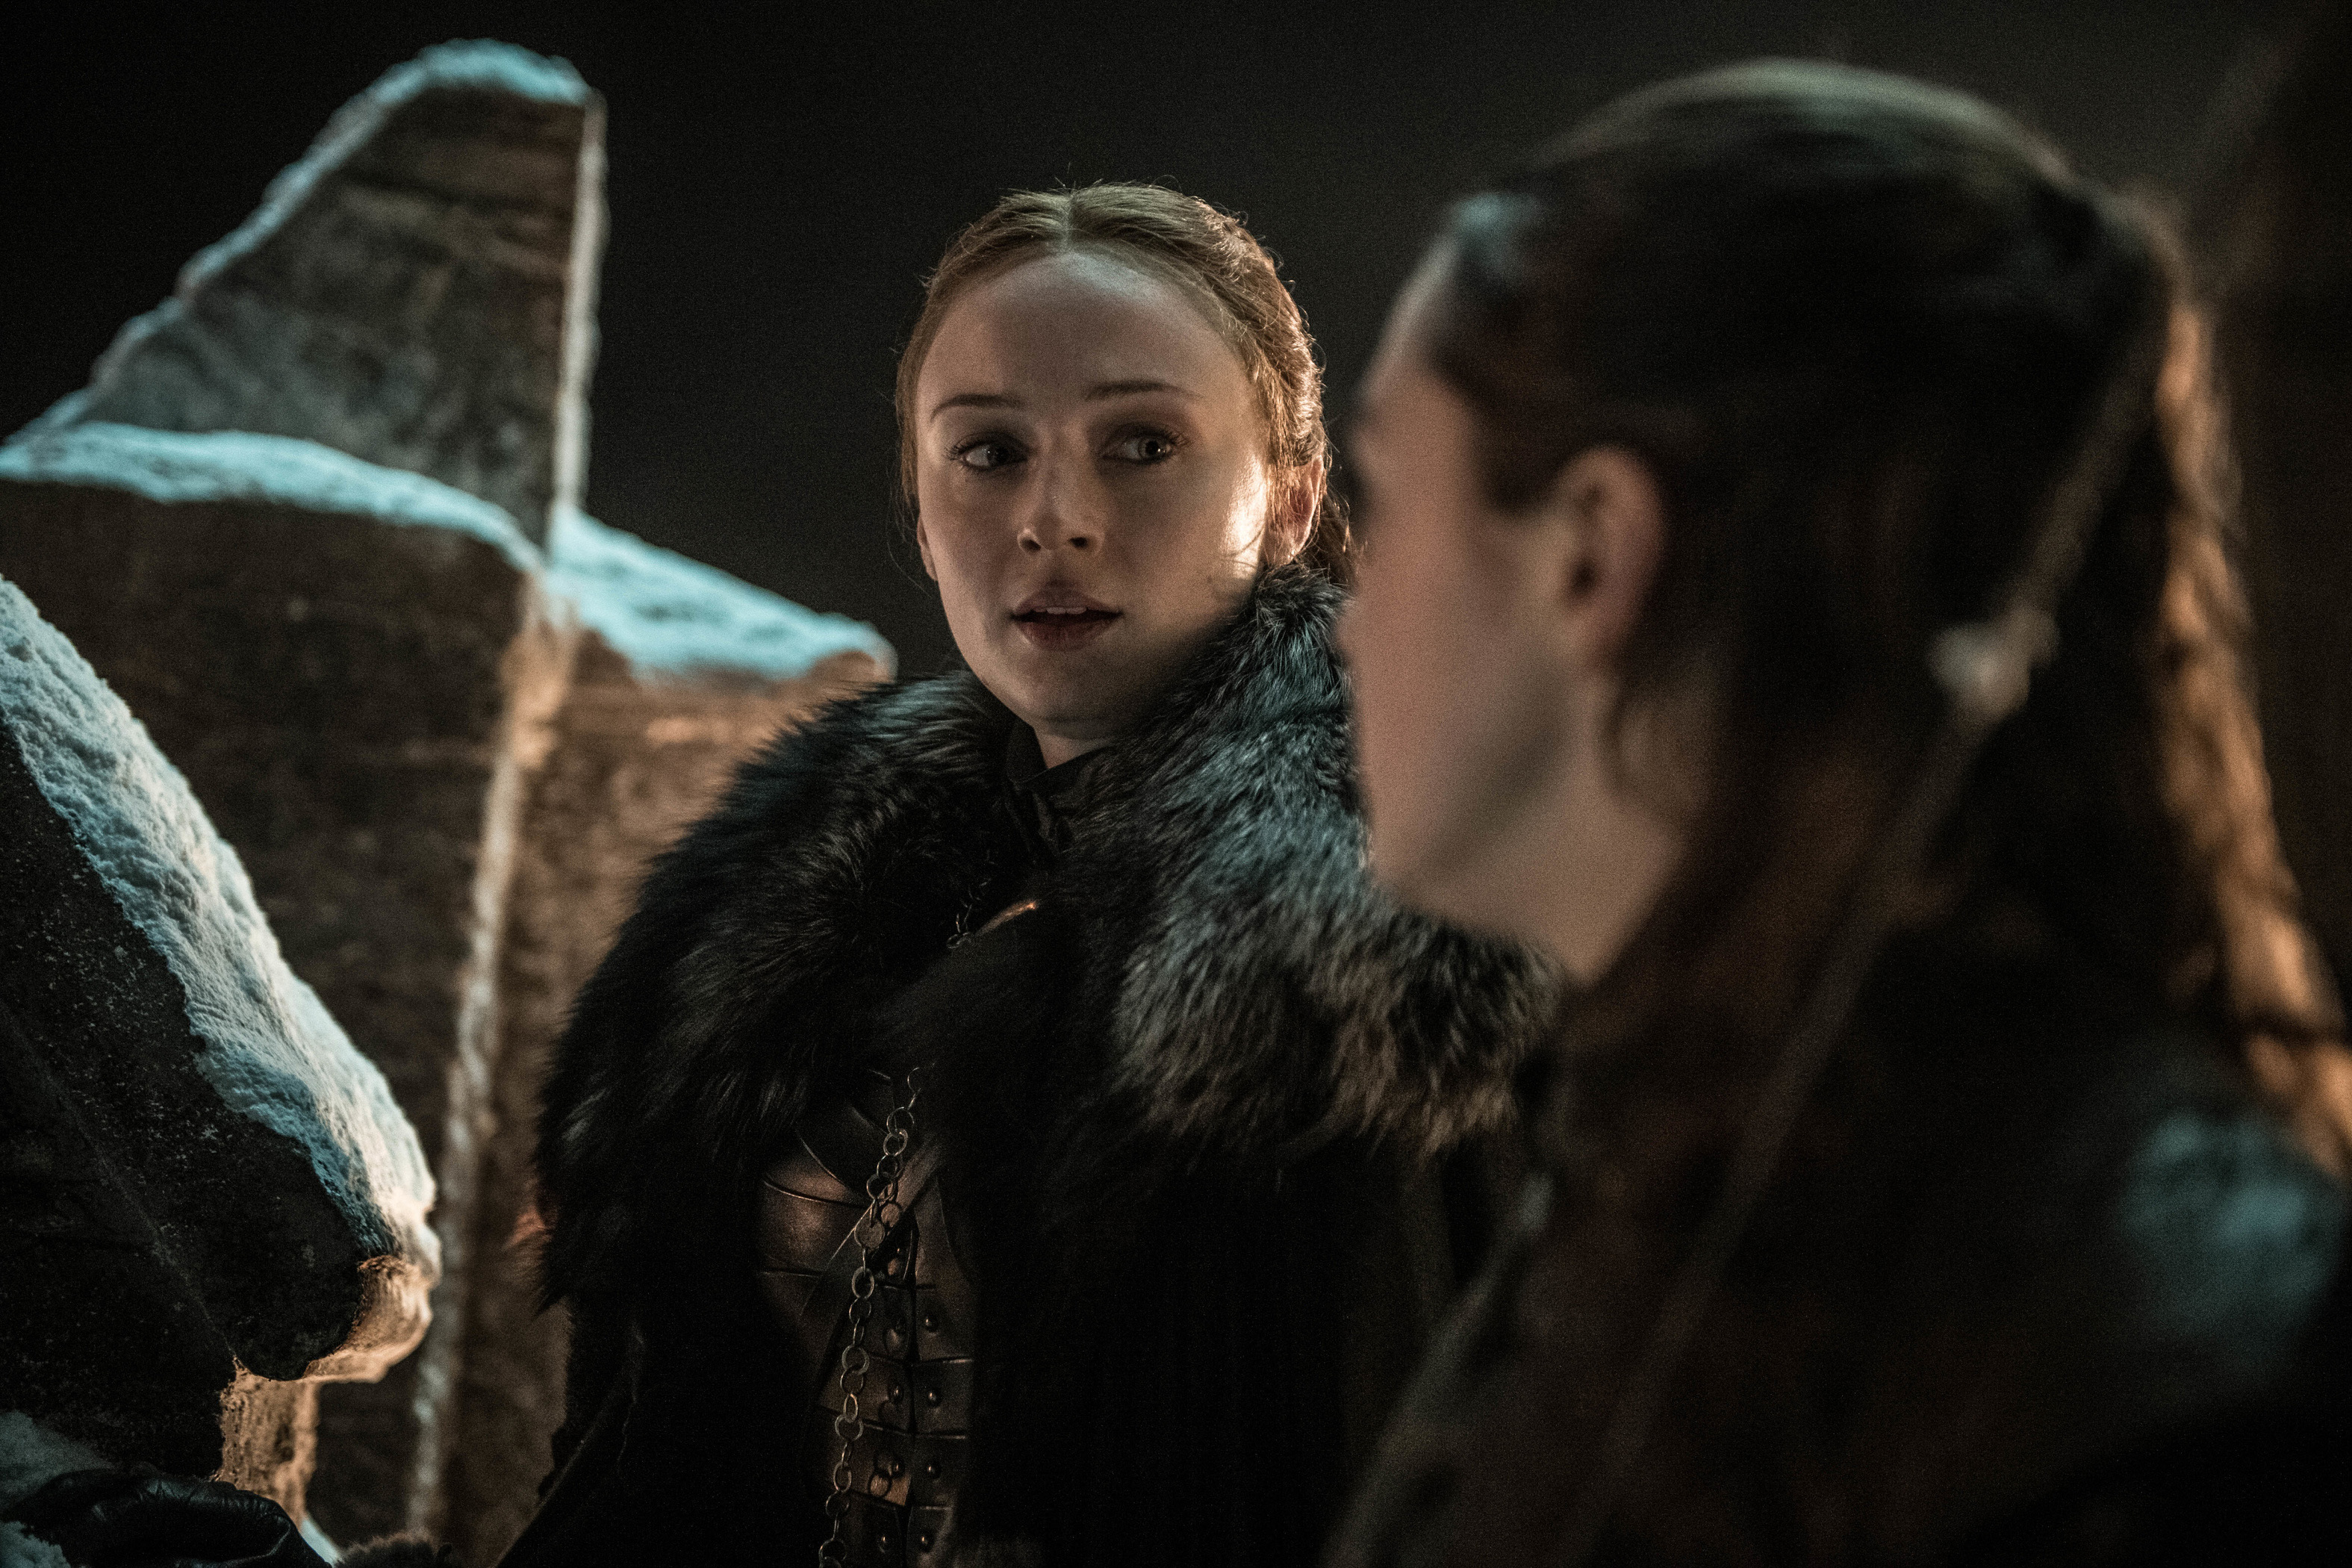 Sophie Turner as Sansa Stark and Maisie Williams as Arya Stark